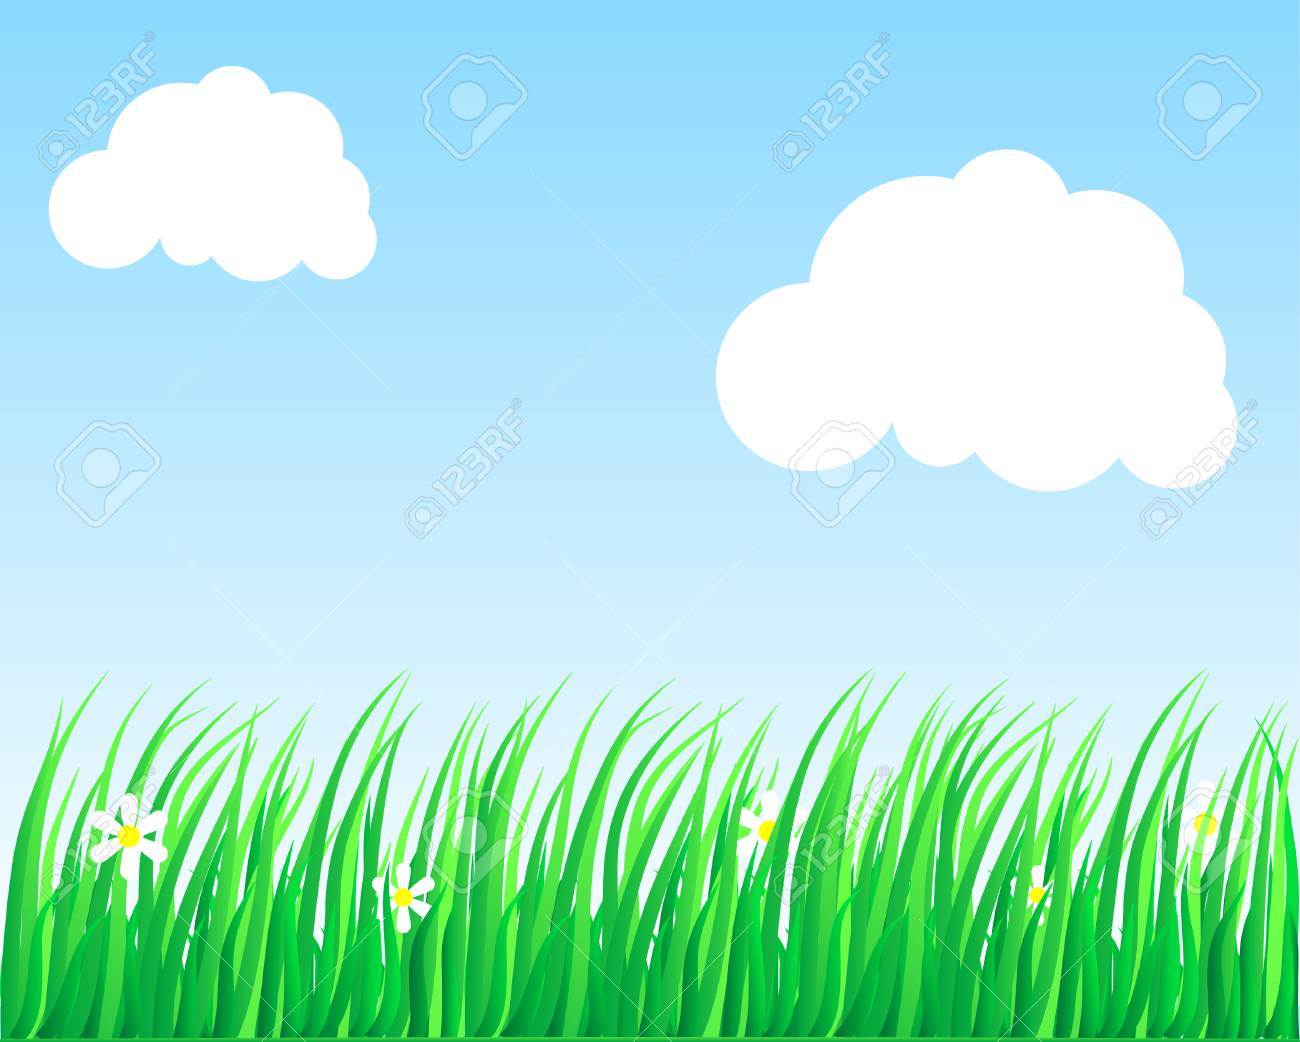 Flowers and grass. Vector illustration. Stock Vector - 2835510